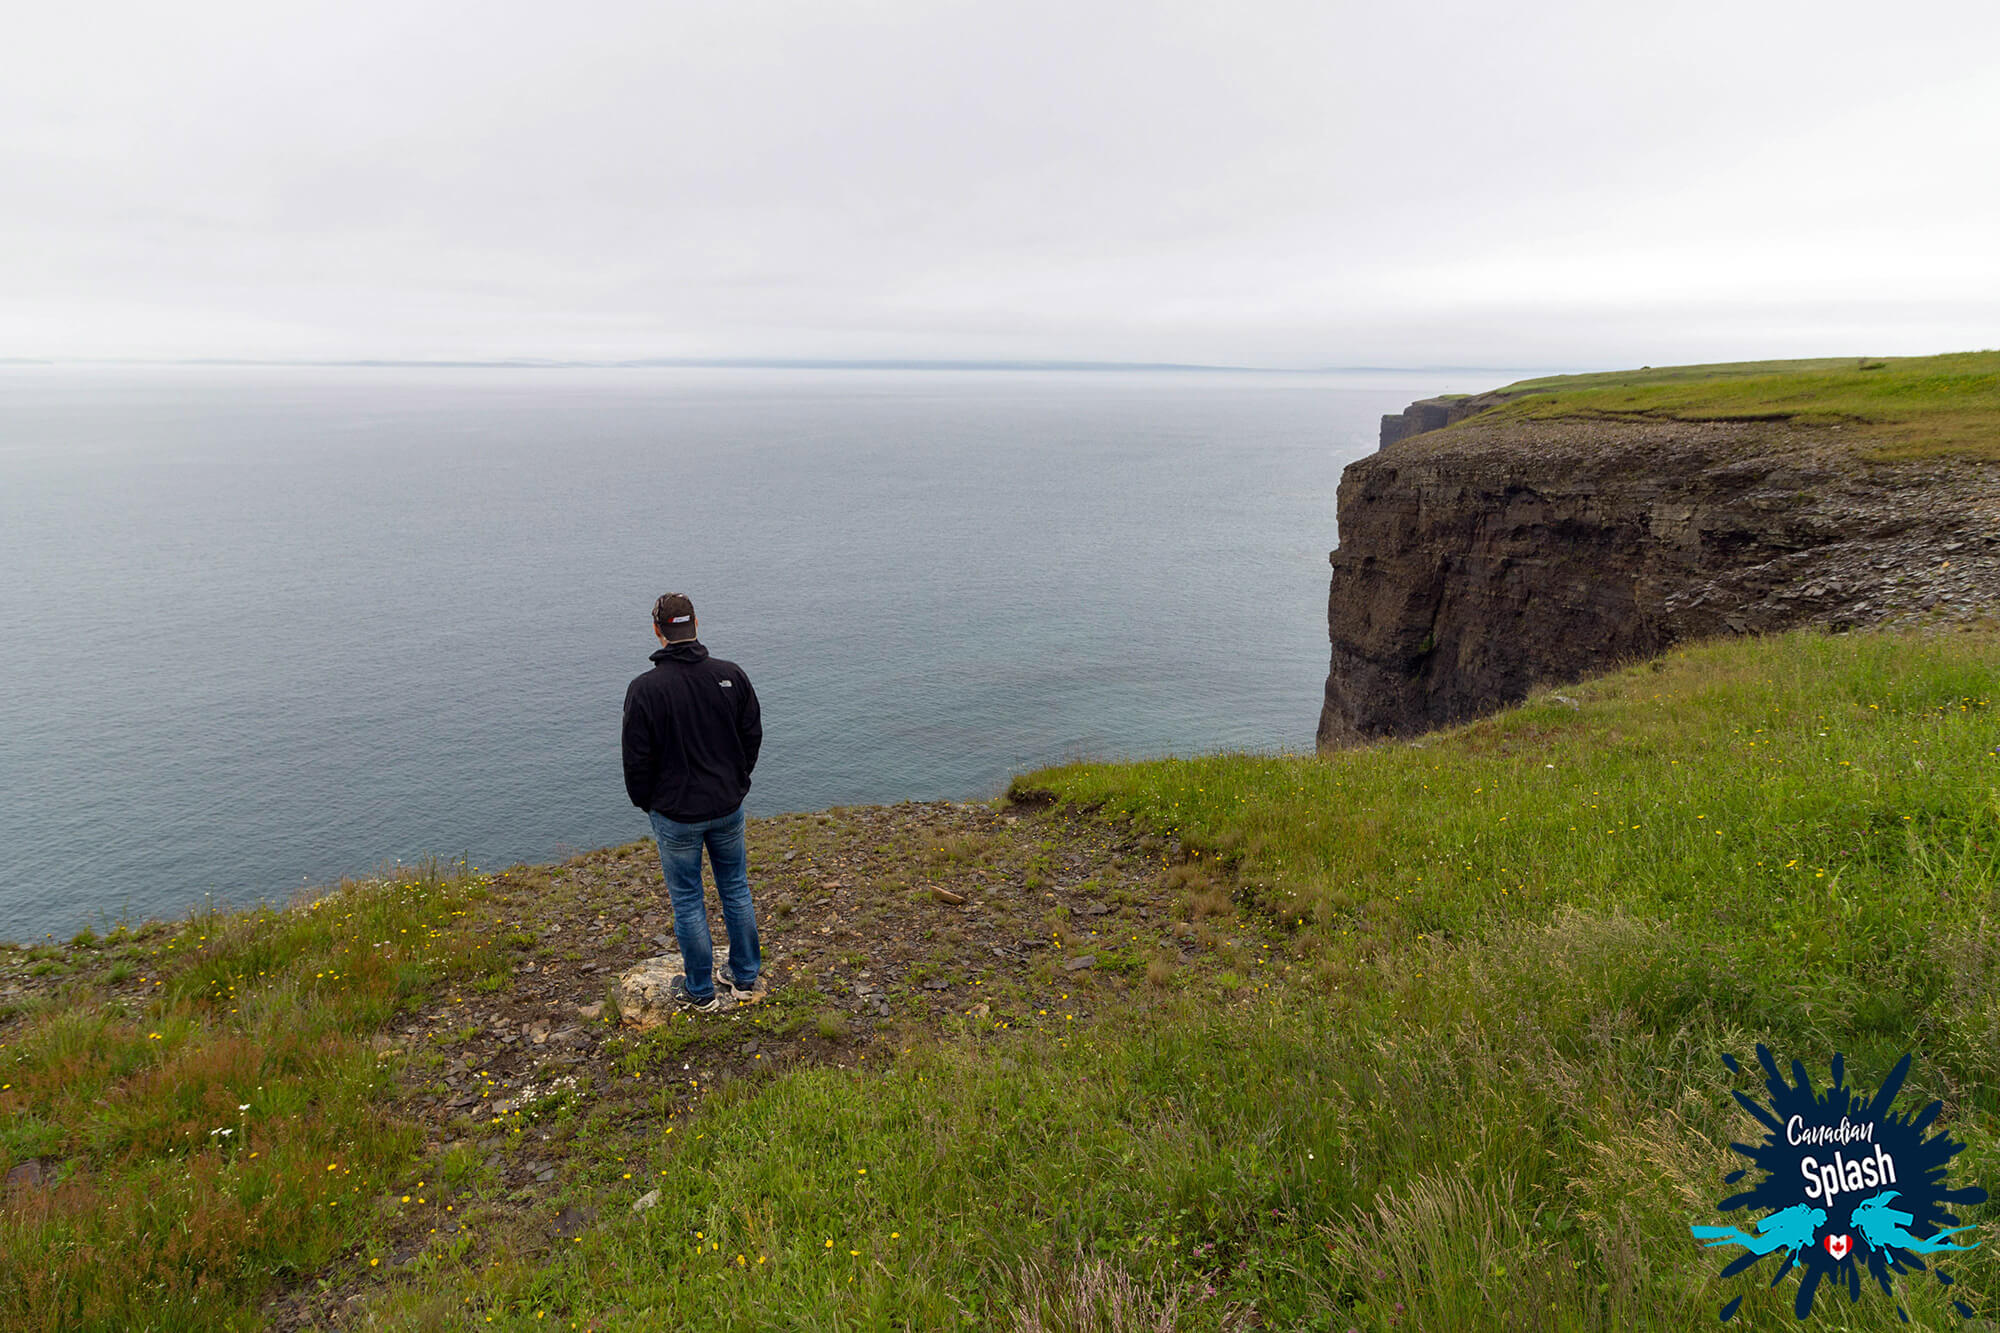 Joey Gazing Out On The Ocean From The Shore Of Bell Island, Newfoundland, Travelling Canada